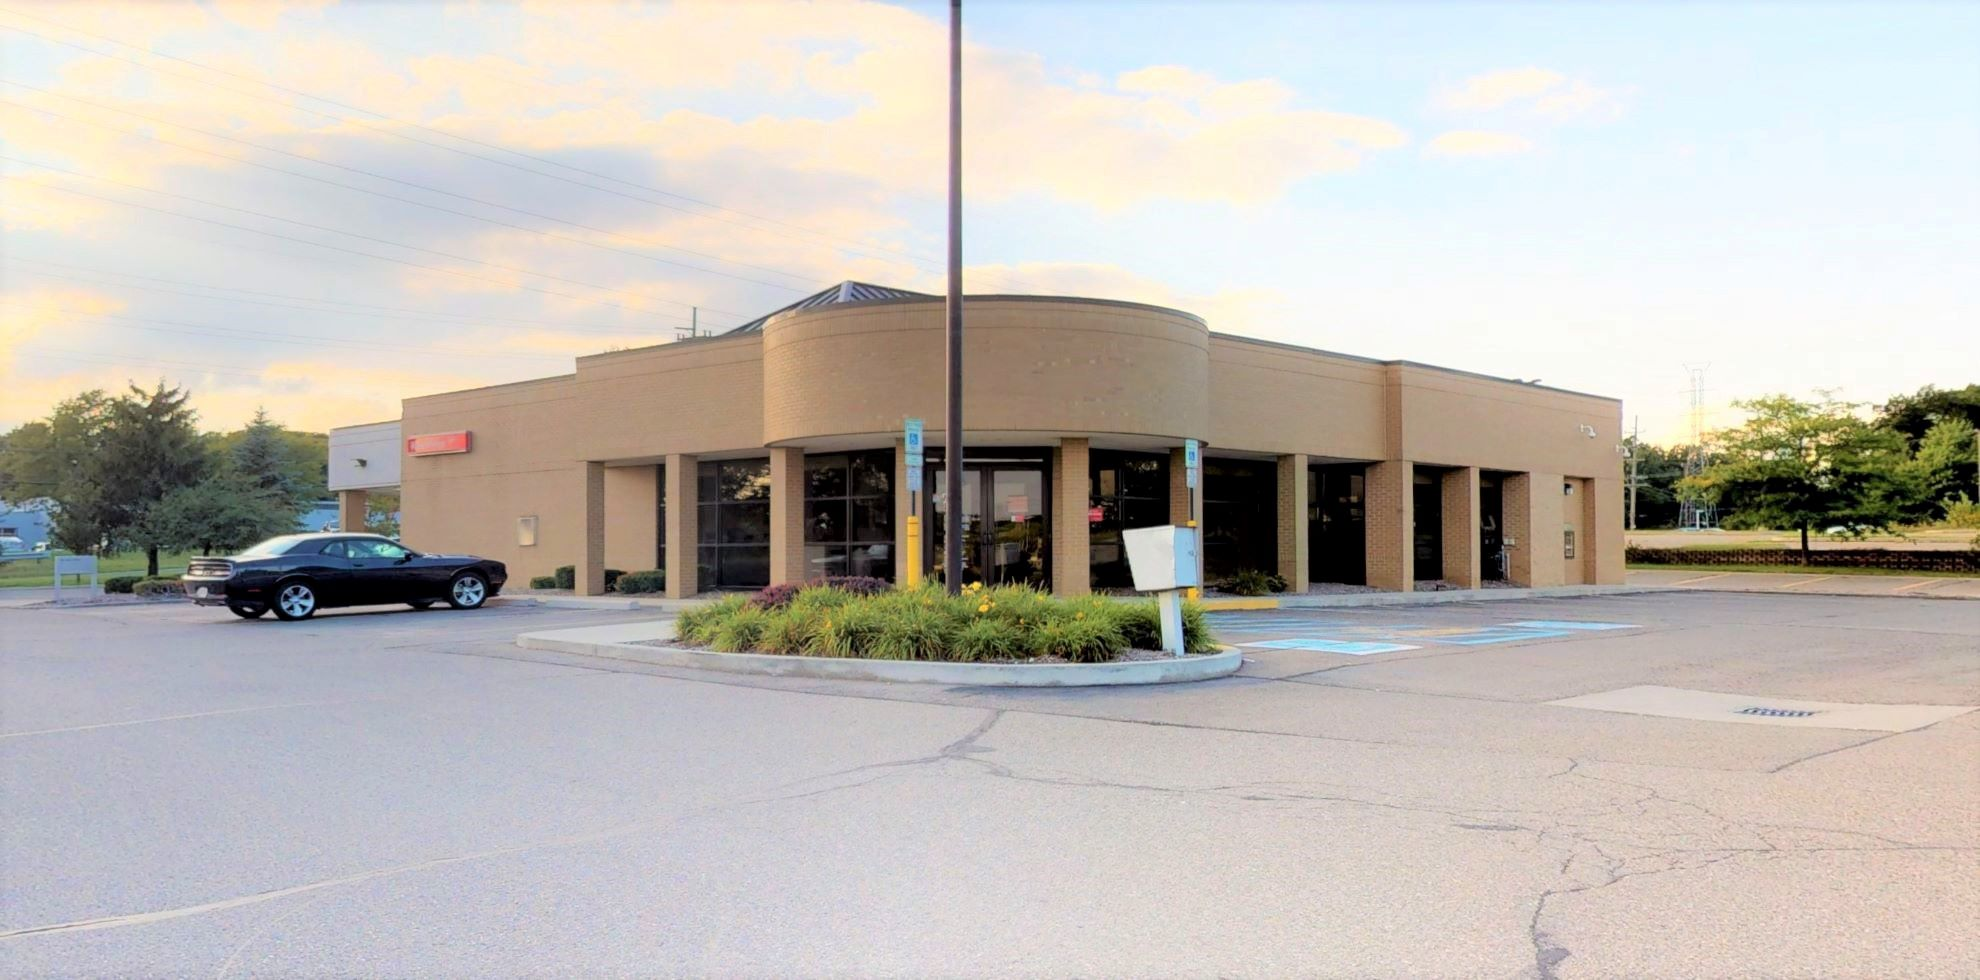 Bank of America financial center with drive-thru ATM | 3085 E West Maple Rd, Walled Lake, MI 48390